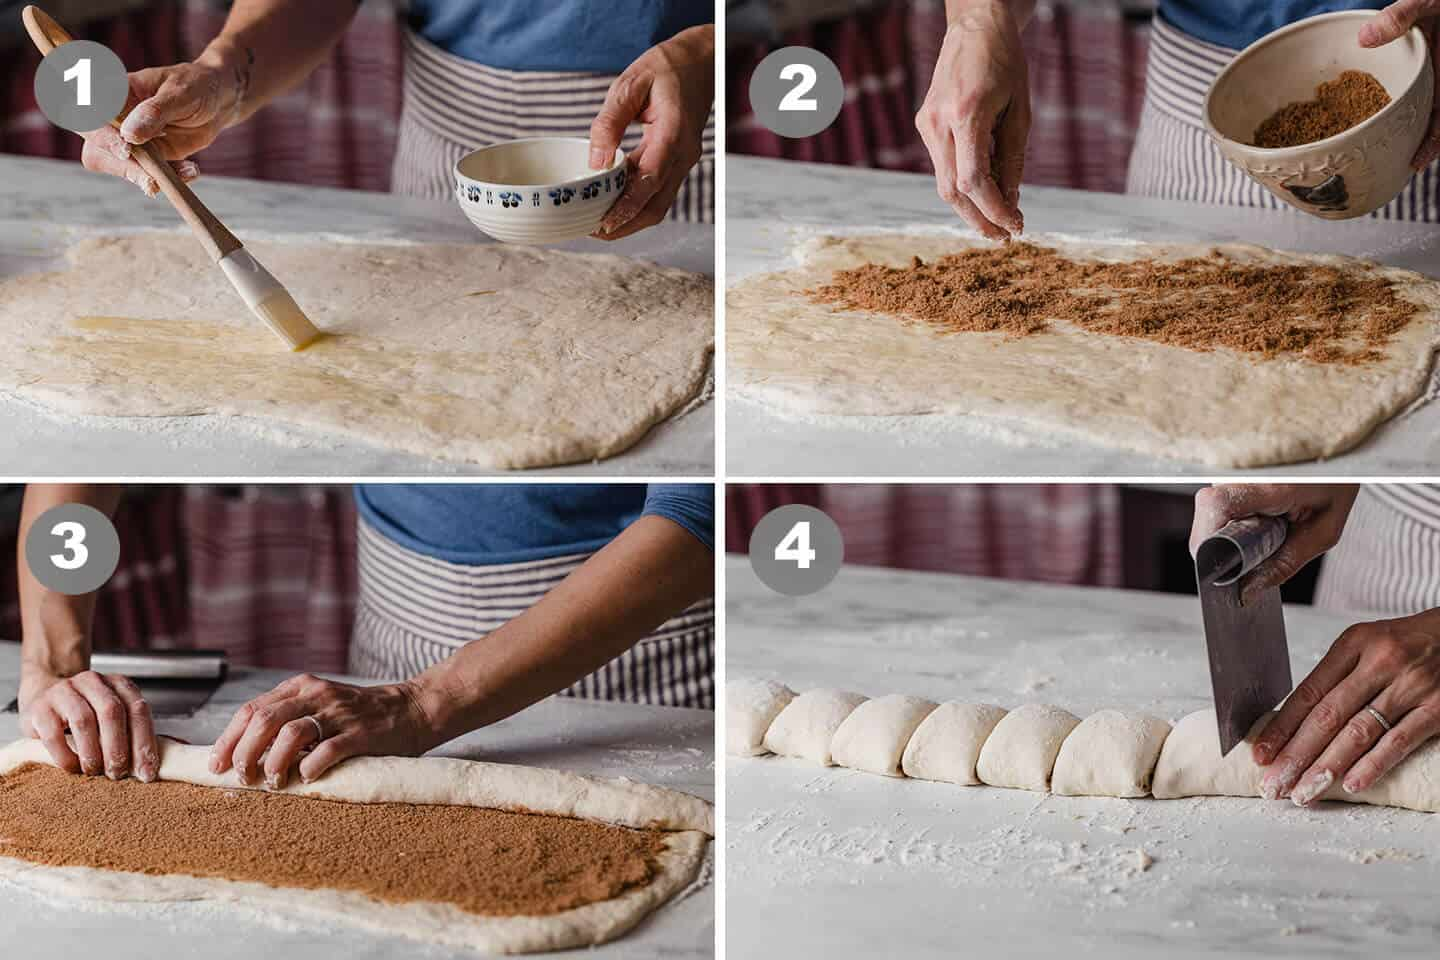 A collage of pictures showing the process of rolling and cutting cinnamon rolls.